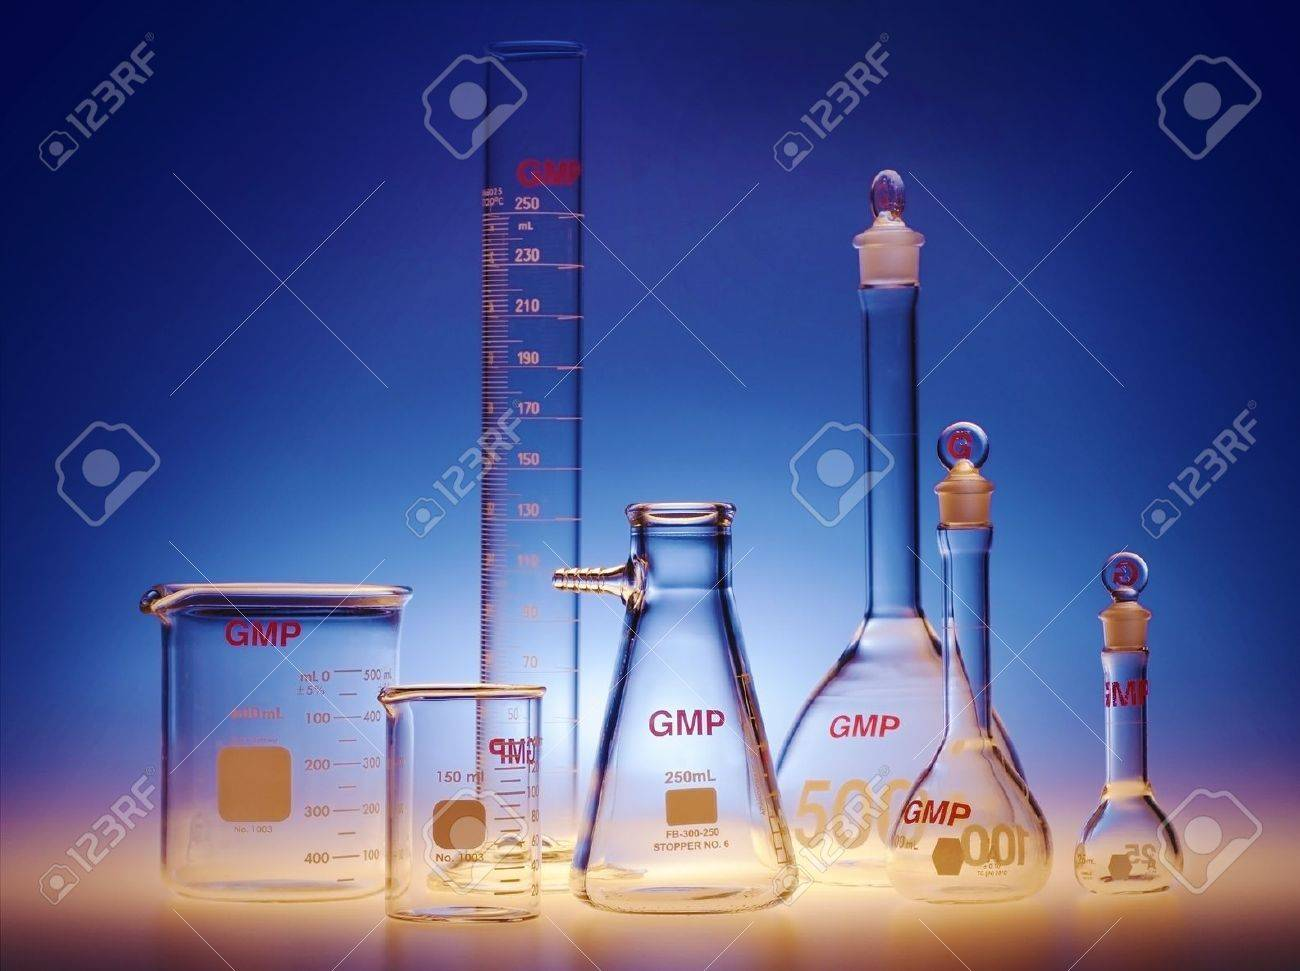 Test-tubes glassware used in chemistry and biology laboratories Stock Photo - 17107194